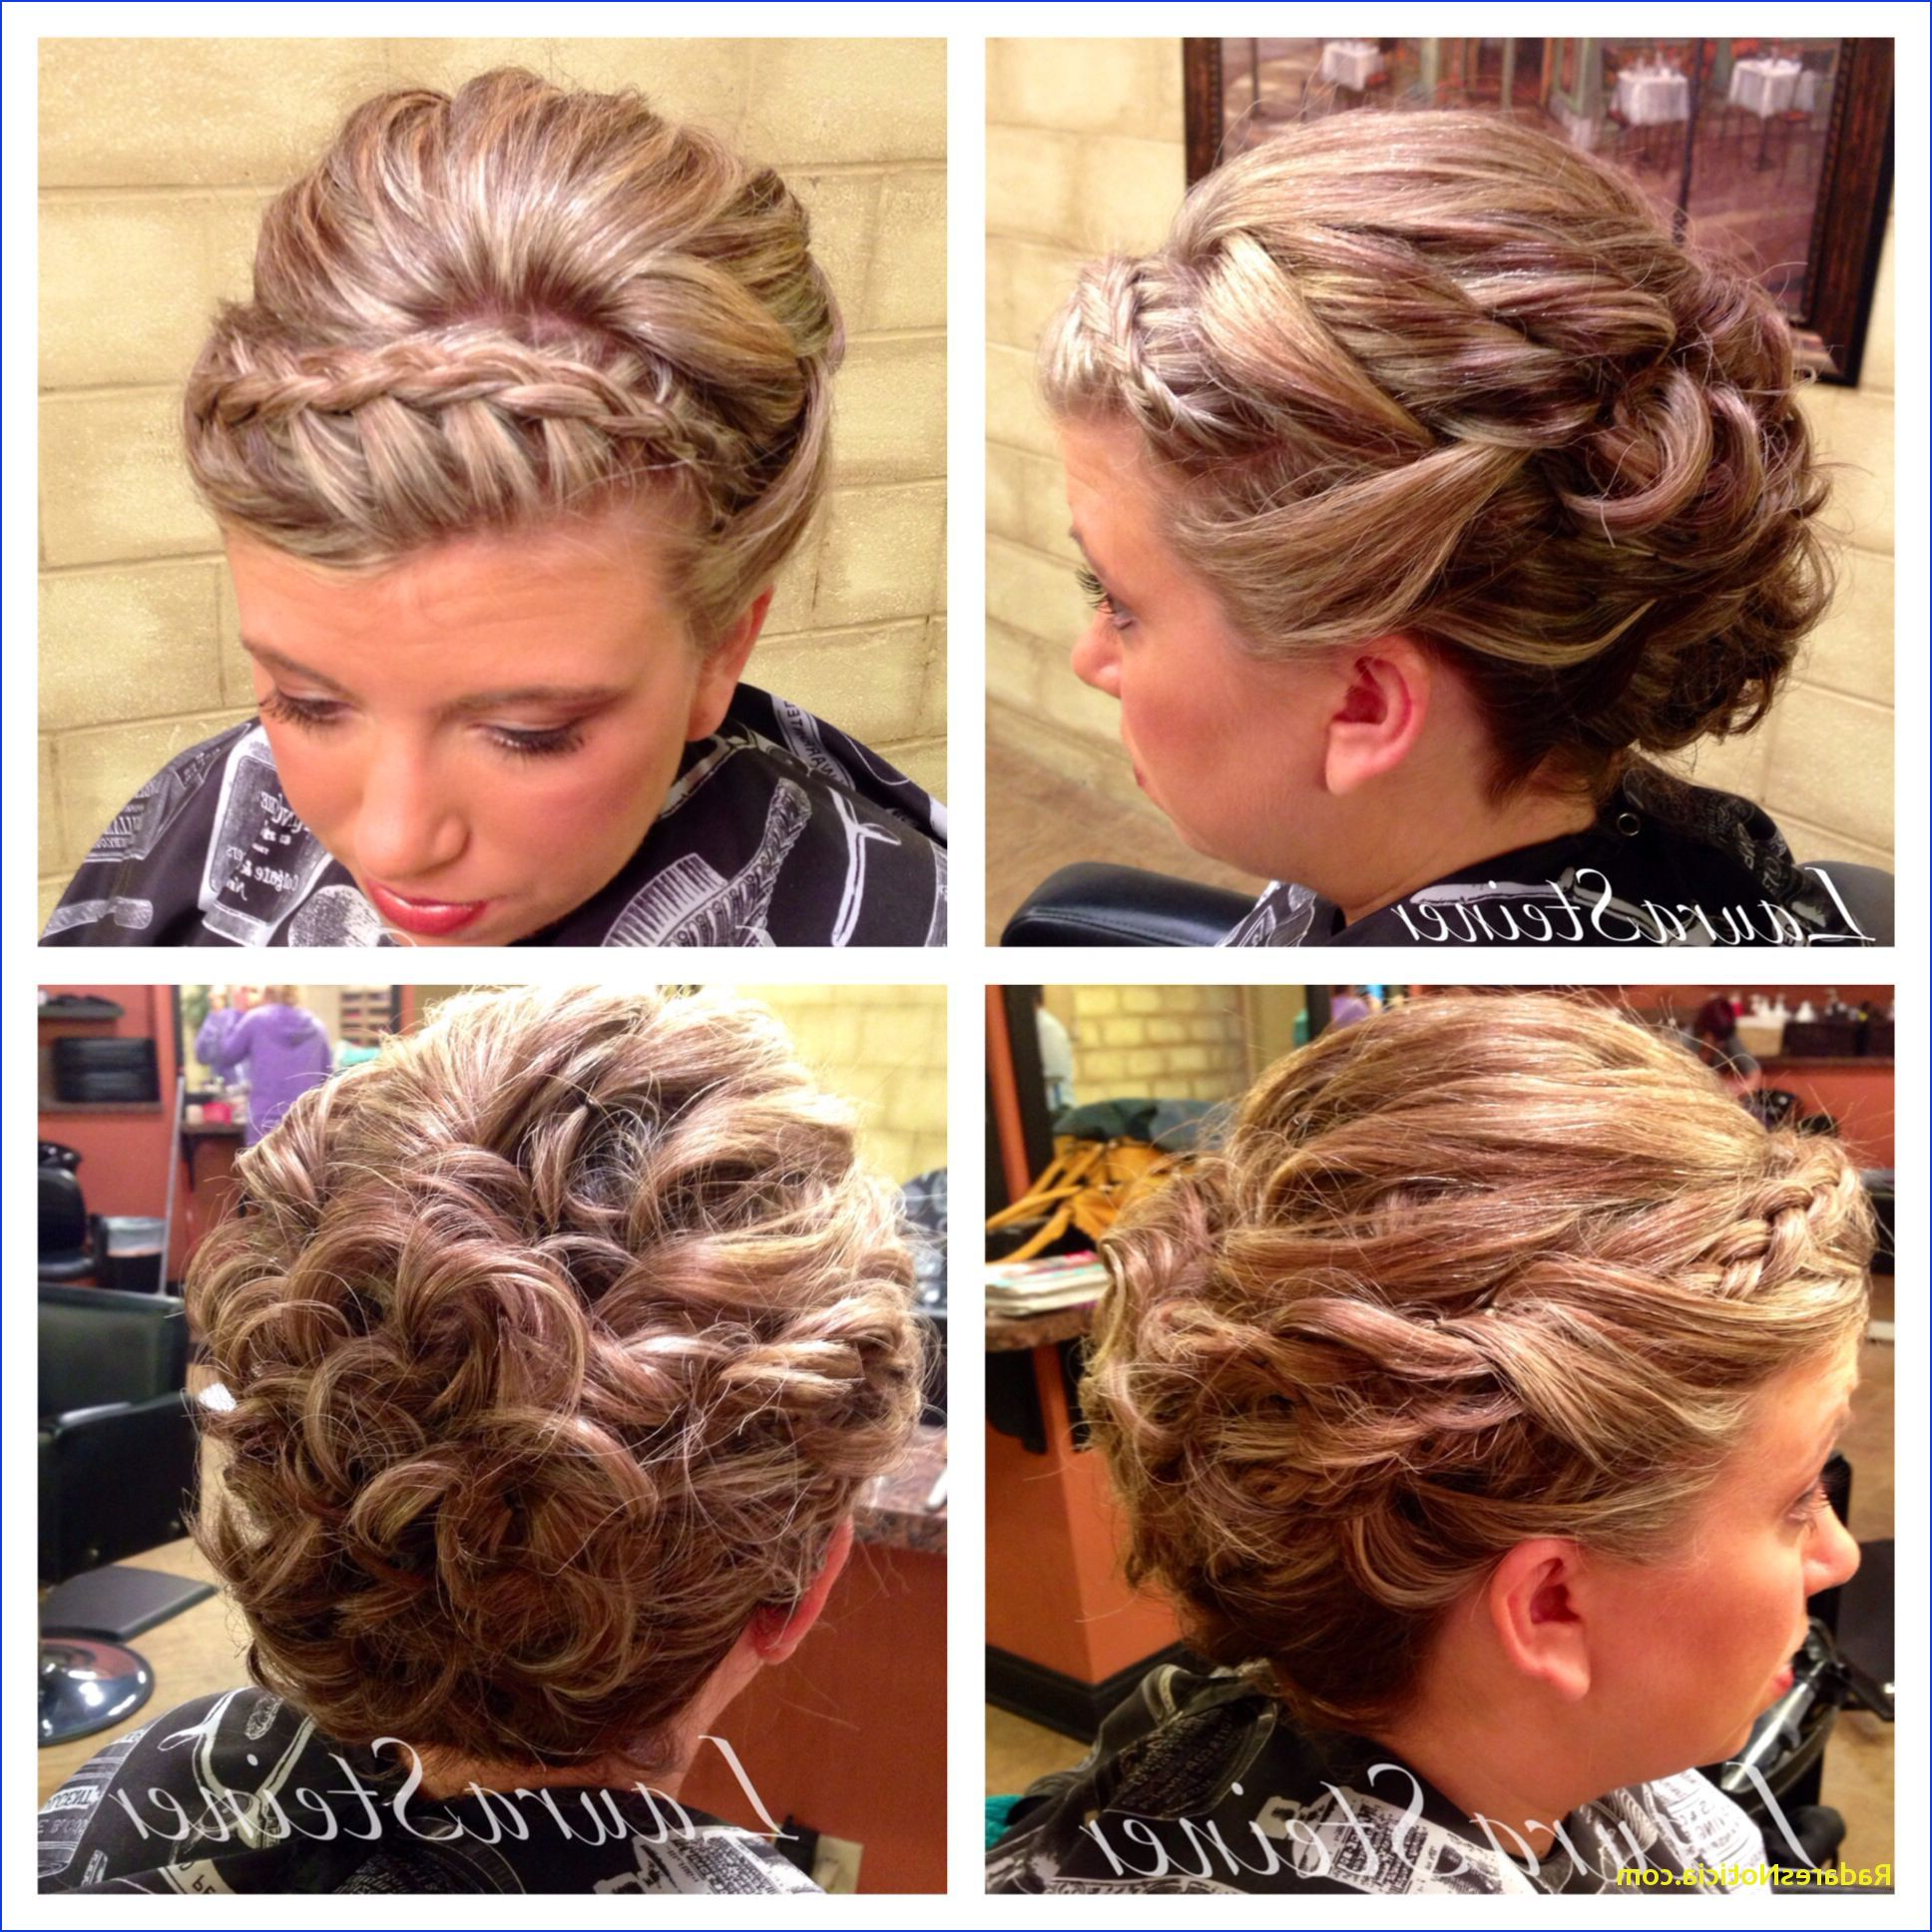 Braided Headband Hairstyles Wedding Hairstyles Medium Hair Awesome Pertaining To Popular Medium Haircuts With Headbands (View 7 of 20)